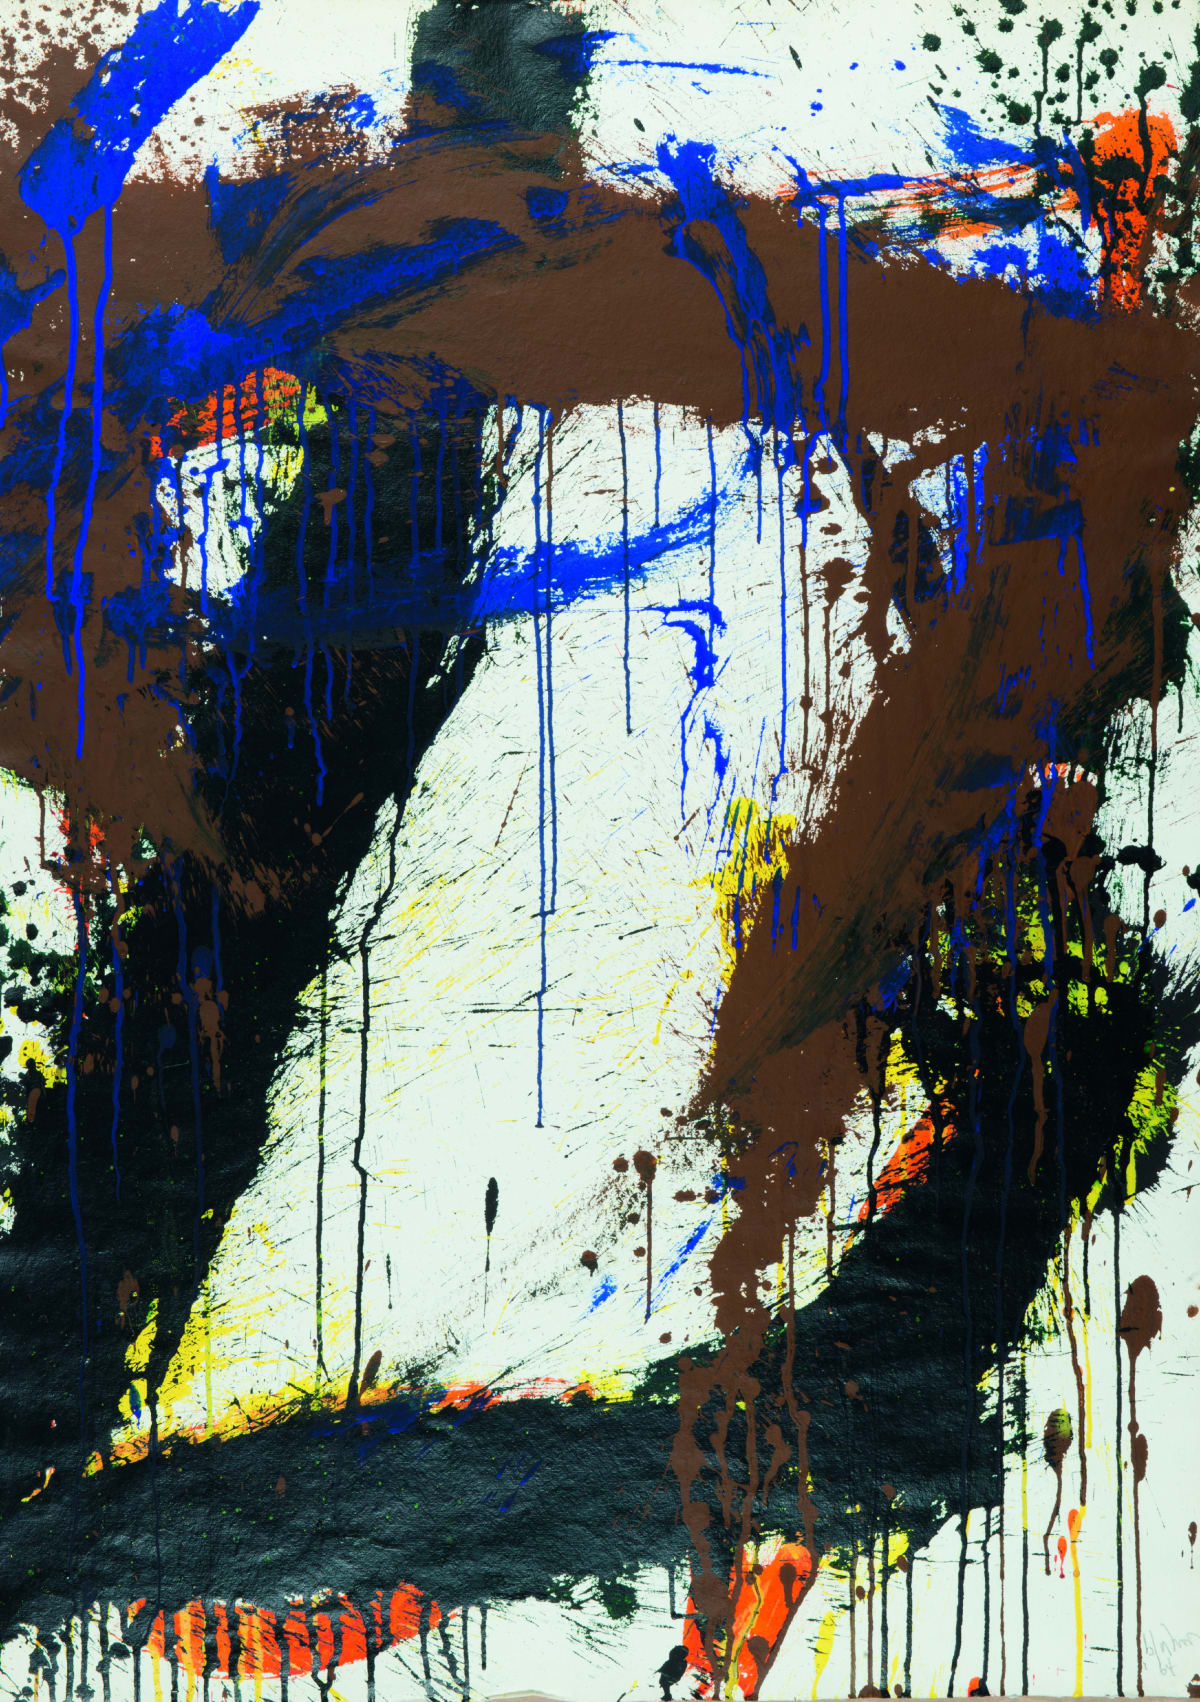 Norman Bluhm, Untitled, 1964